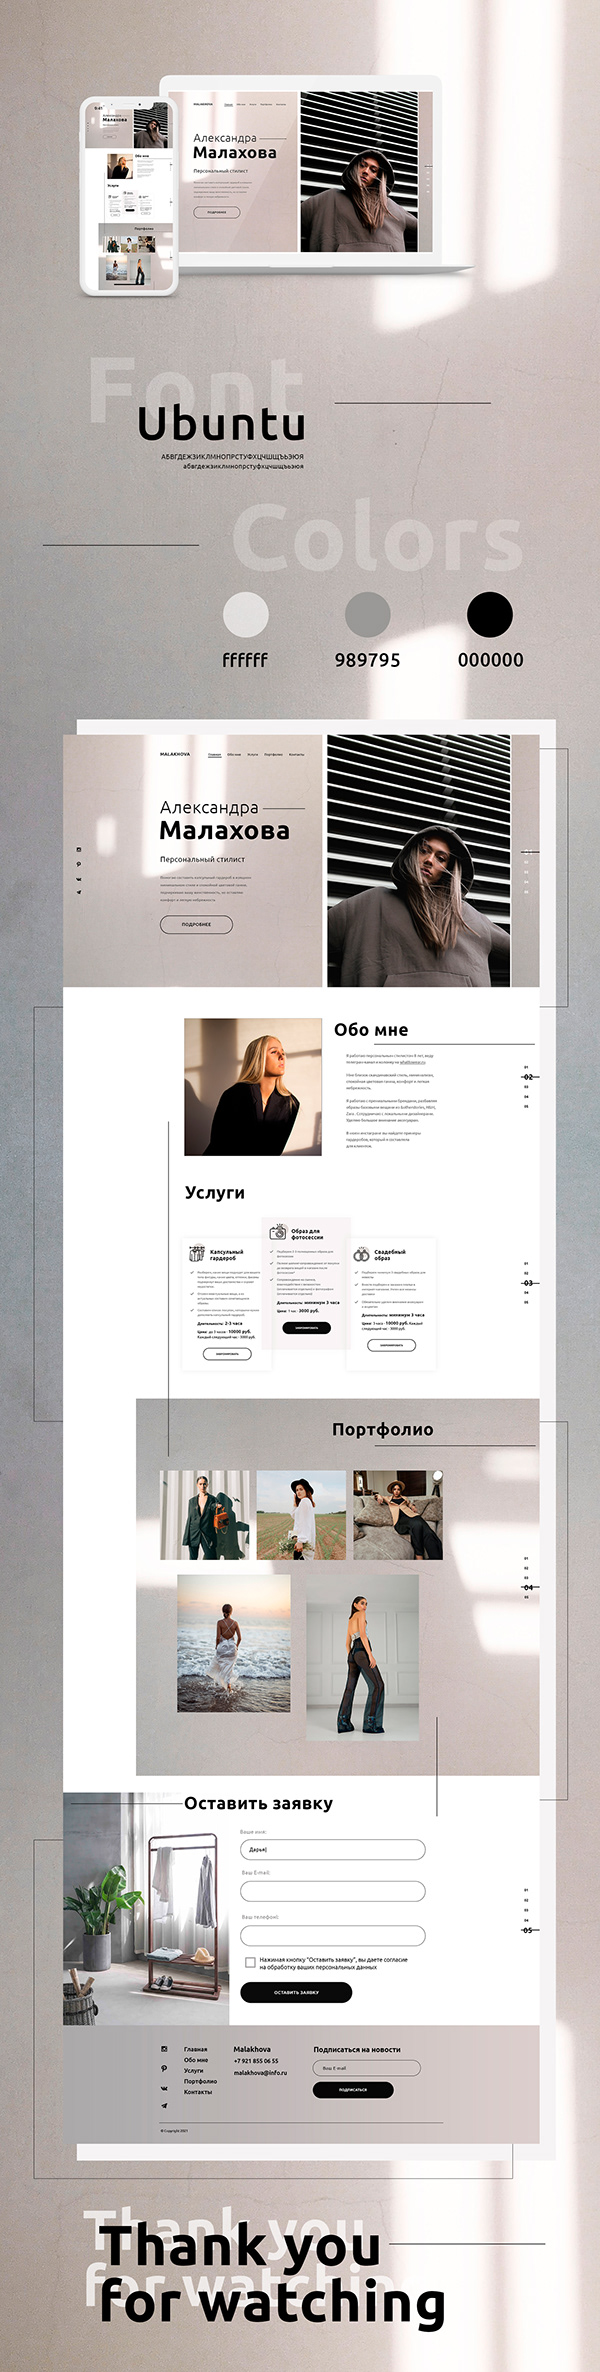 Landing Page For Personal Stylist